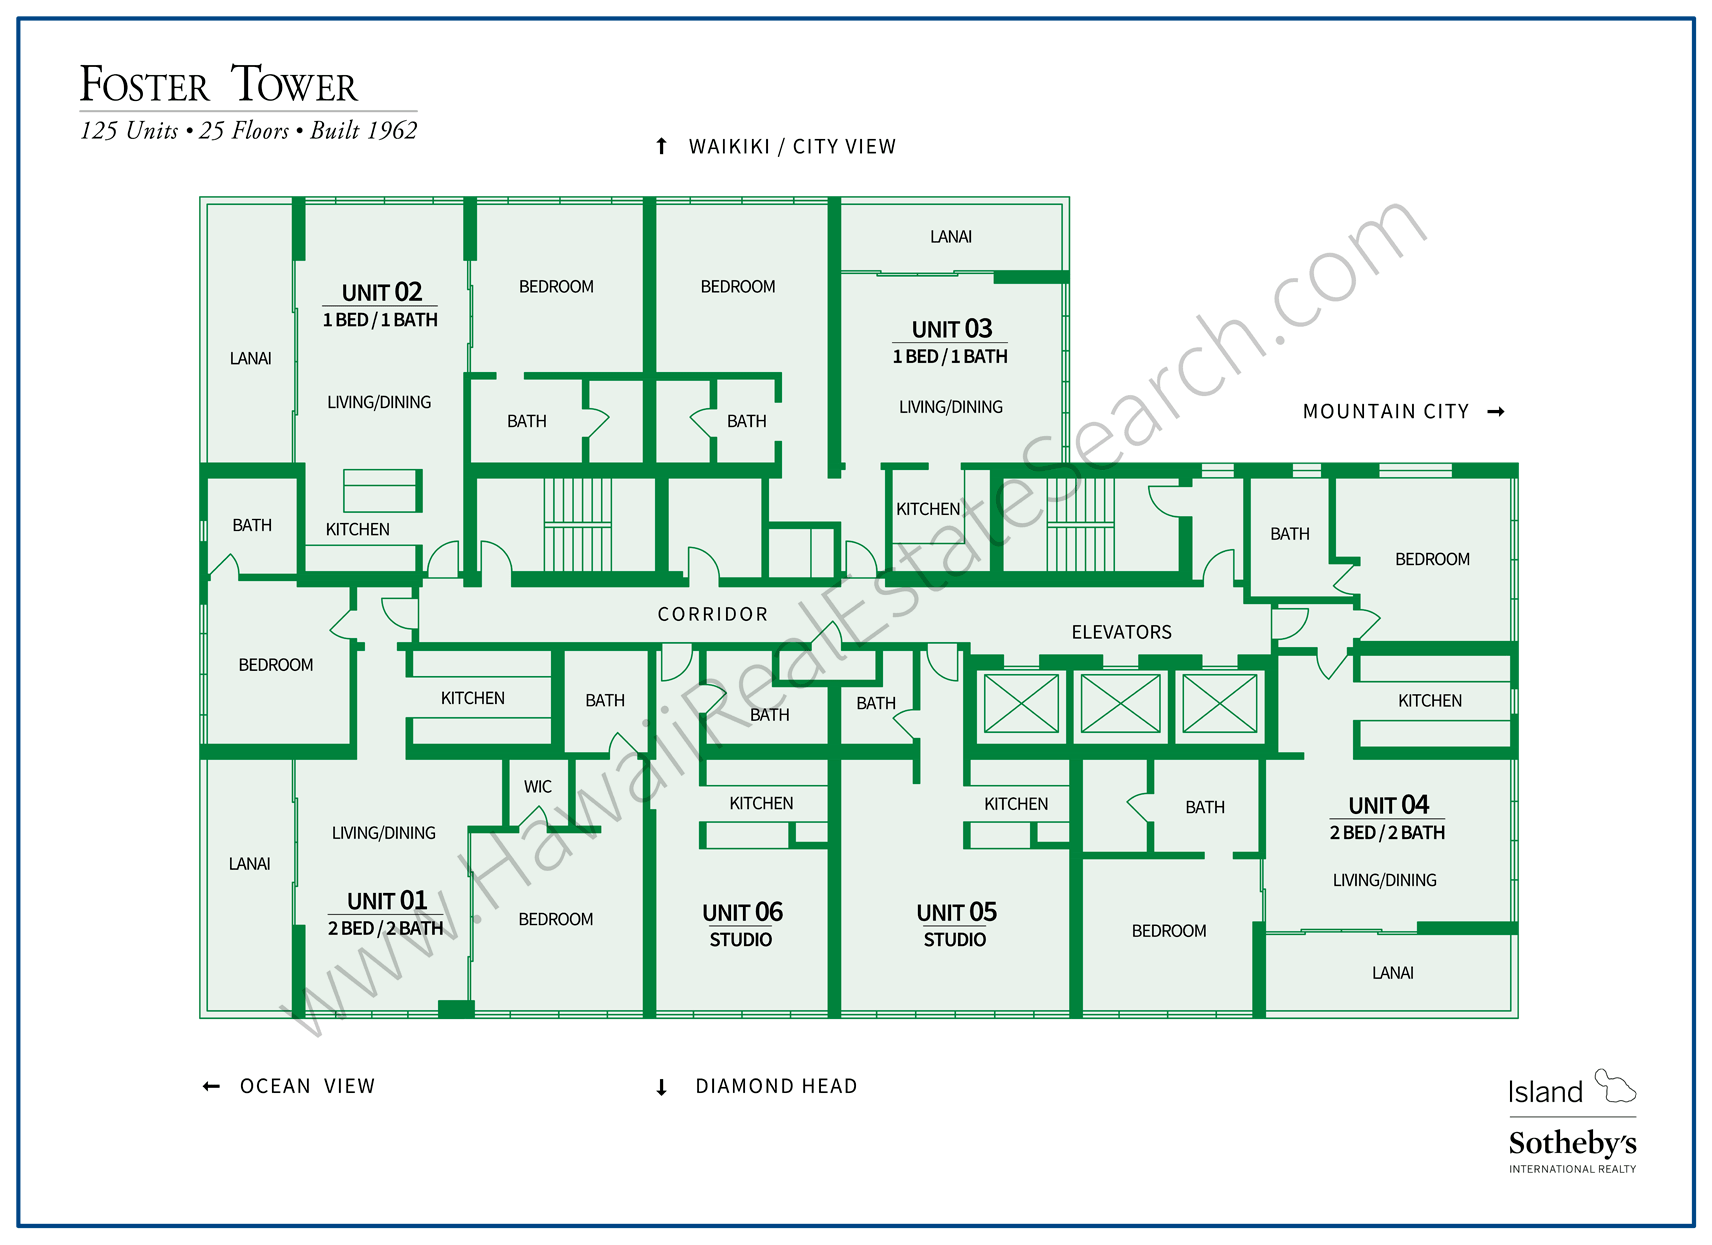 Foster Tower Property Map Waikiki